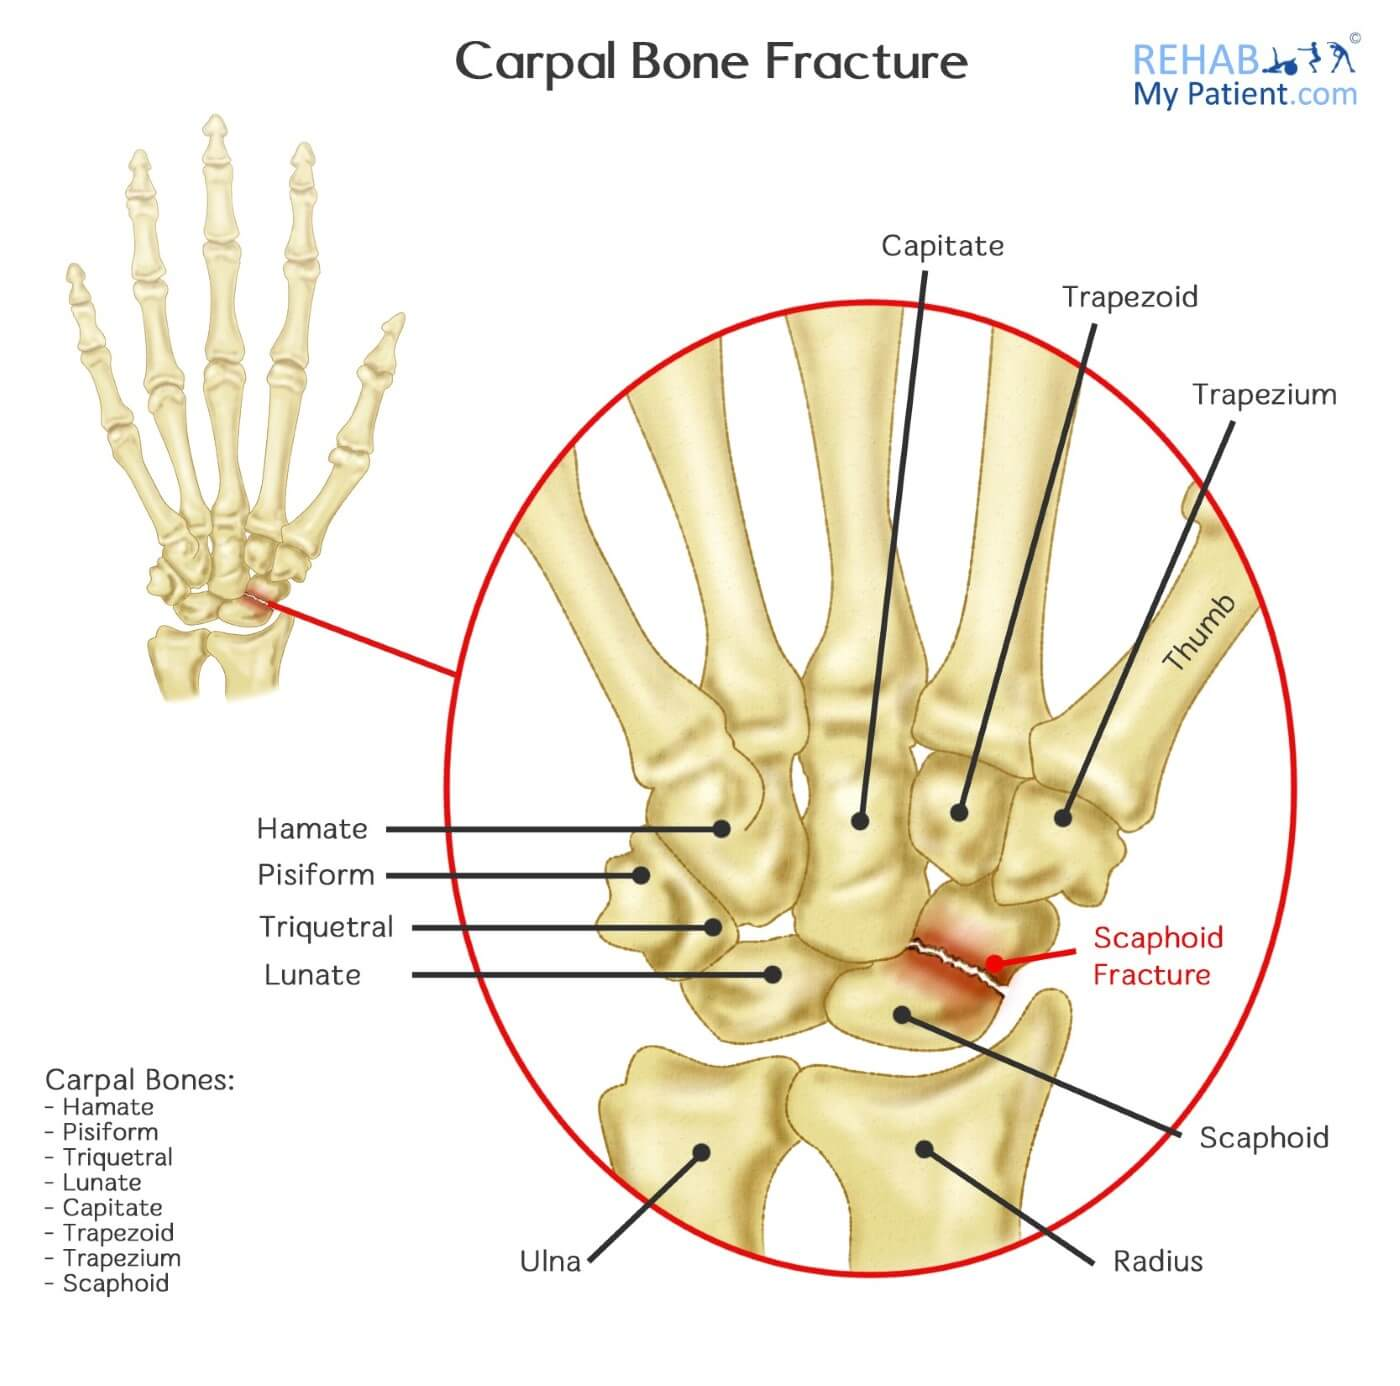 Carpal Bone Fracture Rehab My Patient